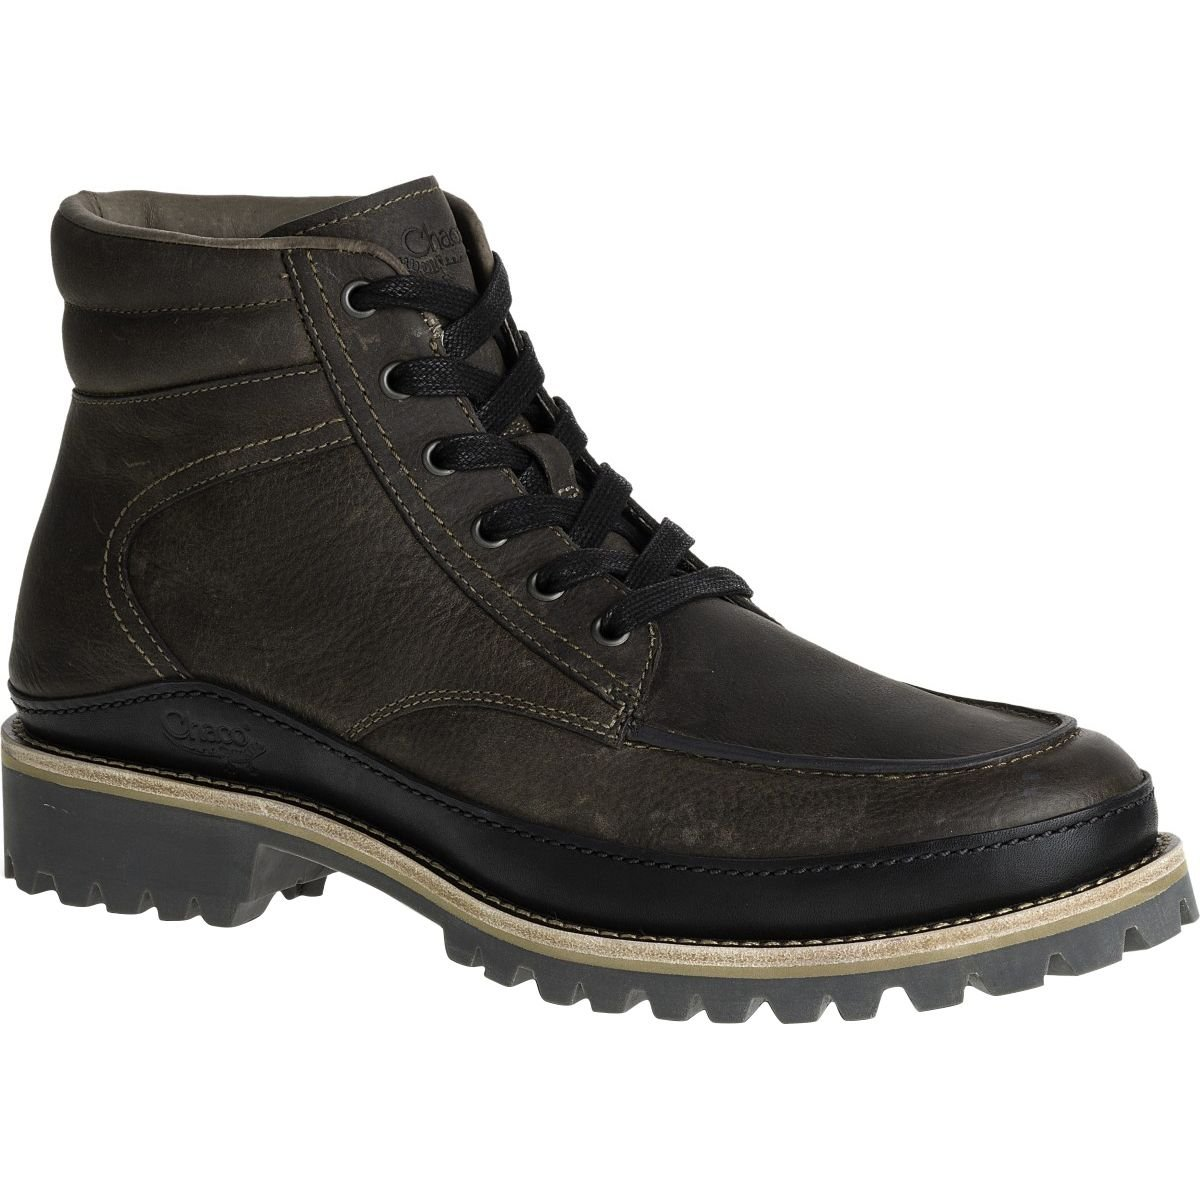 Chaco Men's Yonder-M Boot, Fossil, 11.5 M US by Chaco (Image #1)